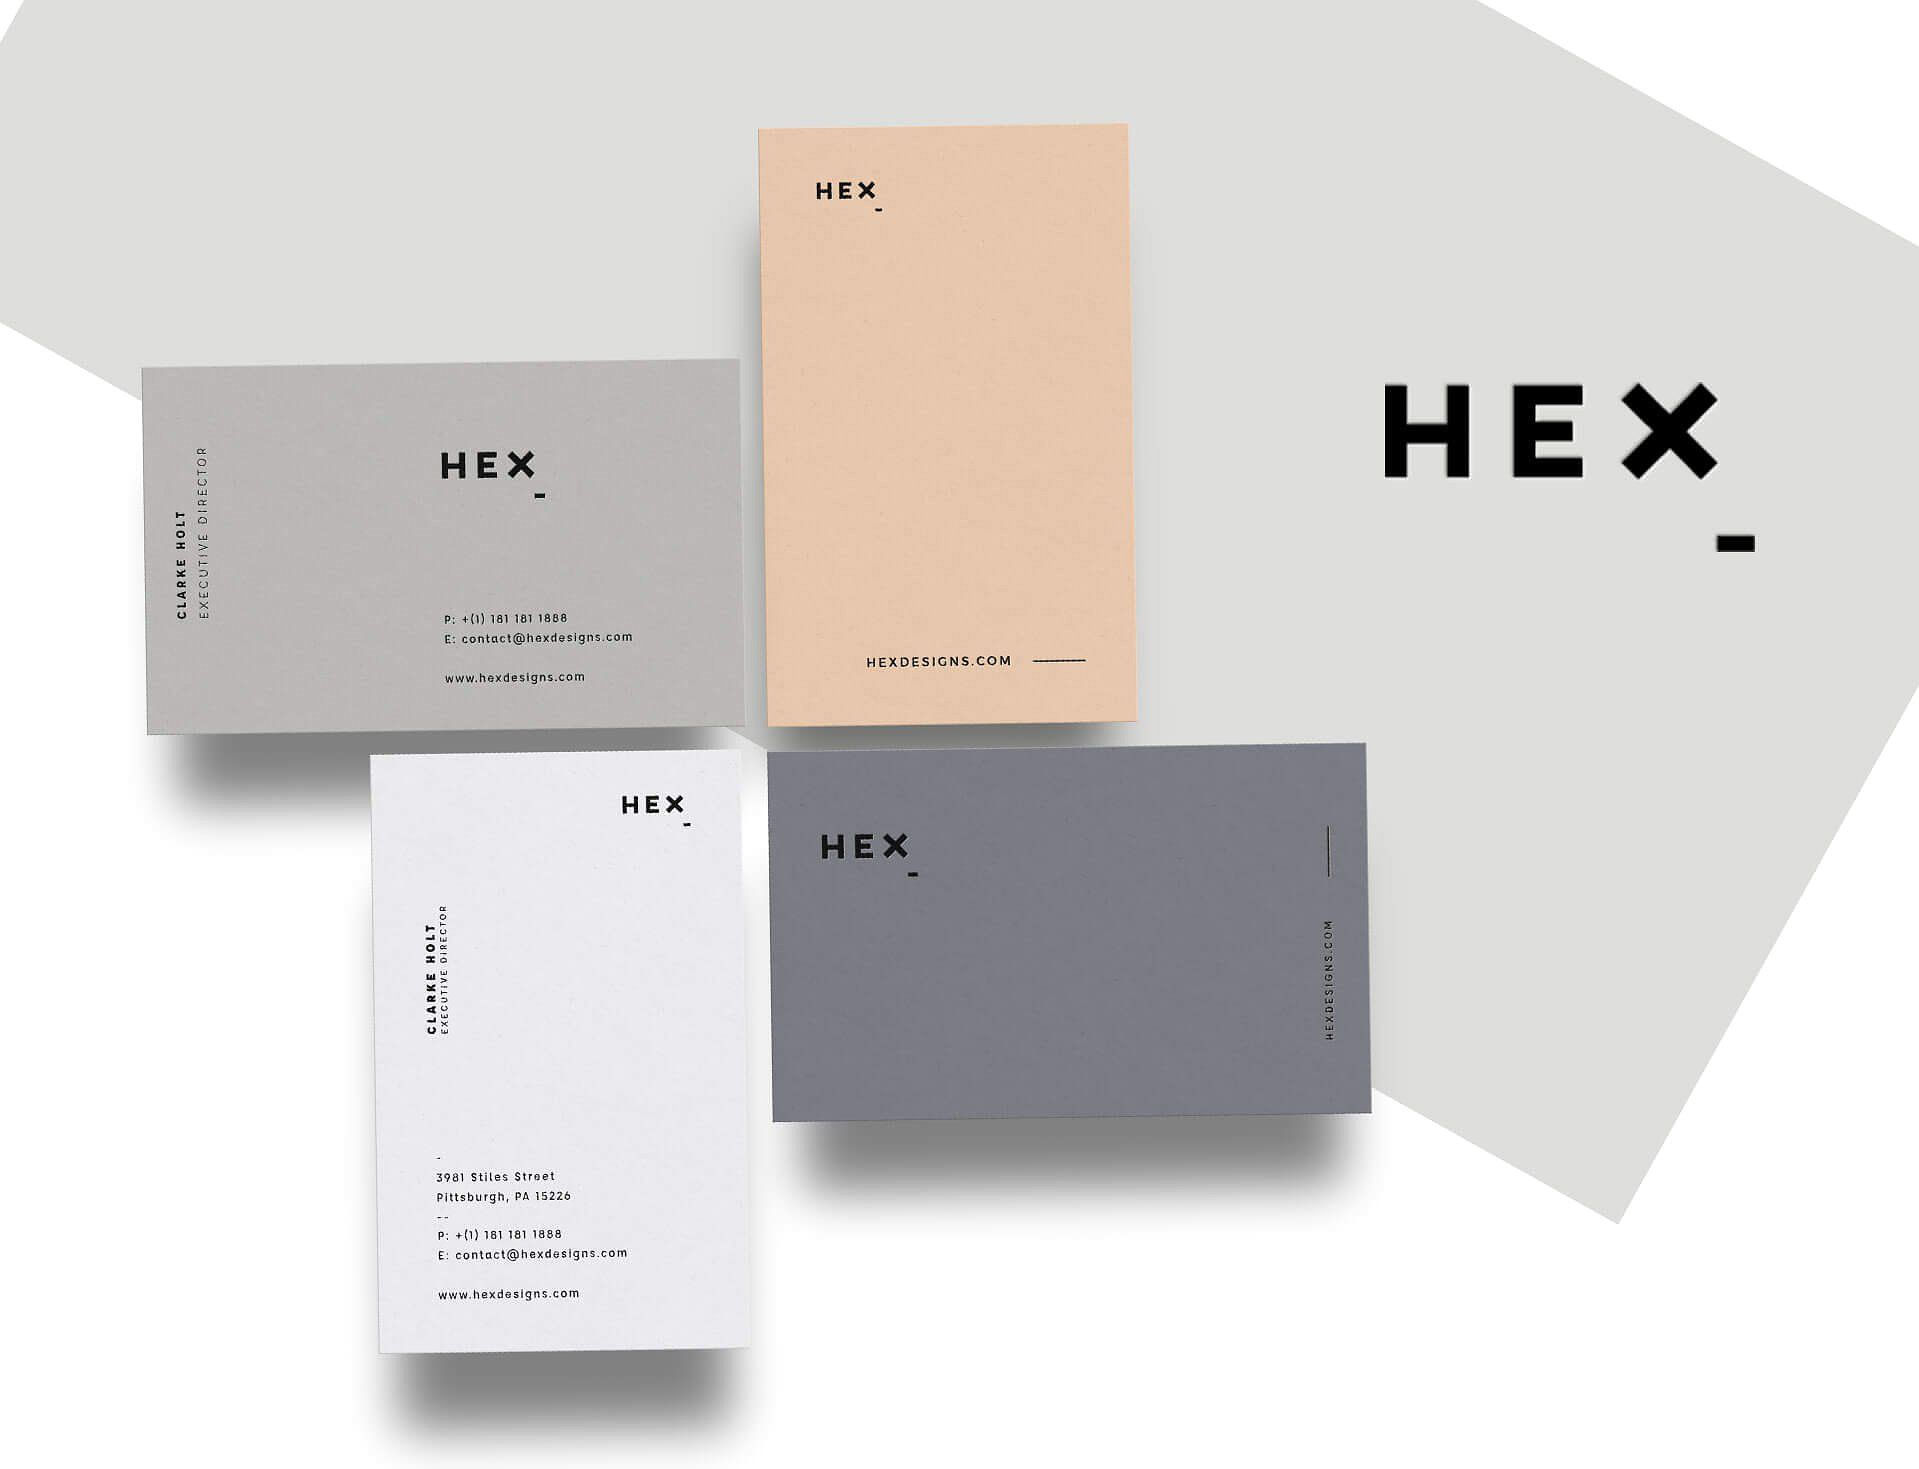 Hex Business Card Template Printing Business Cards Business Cards Creative Templates Business Card Design